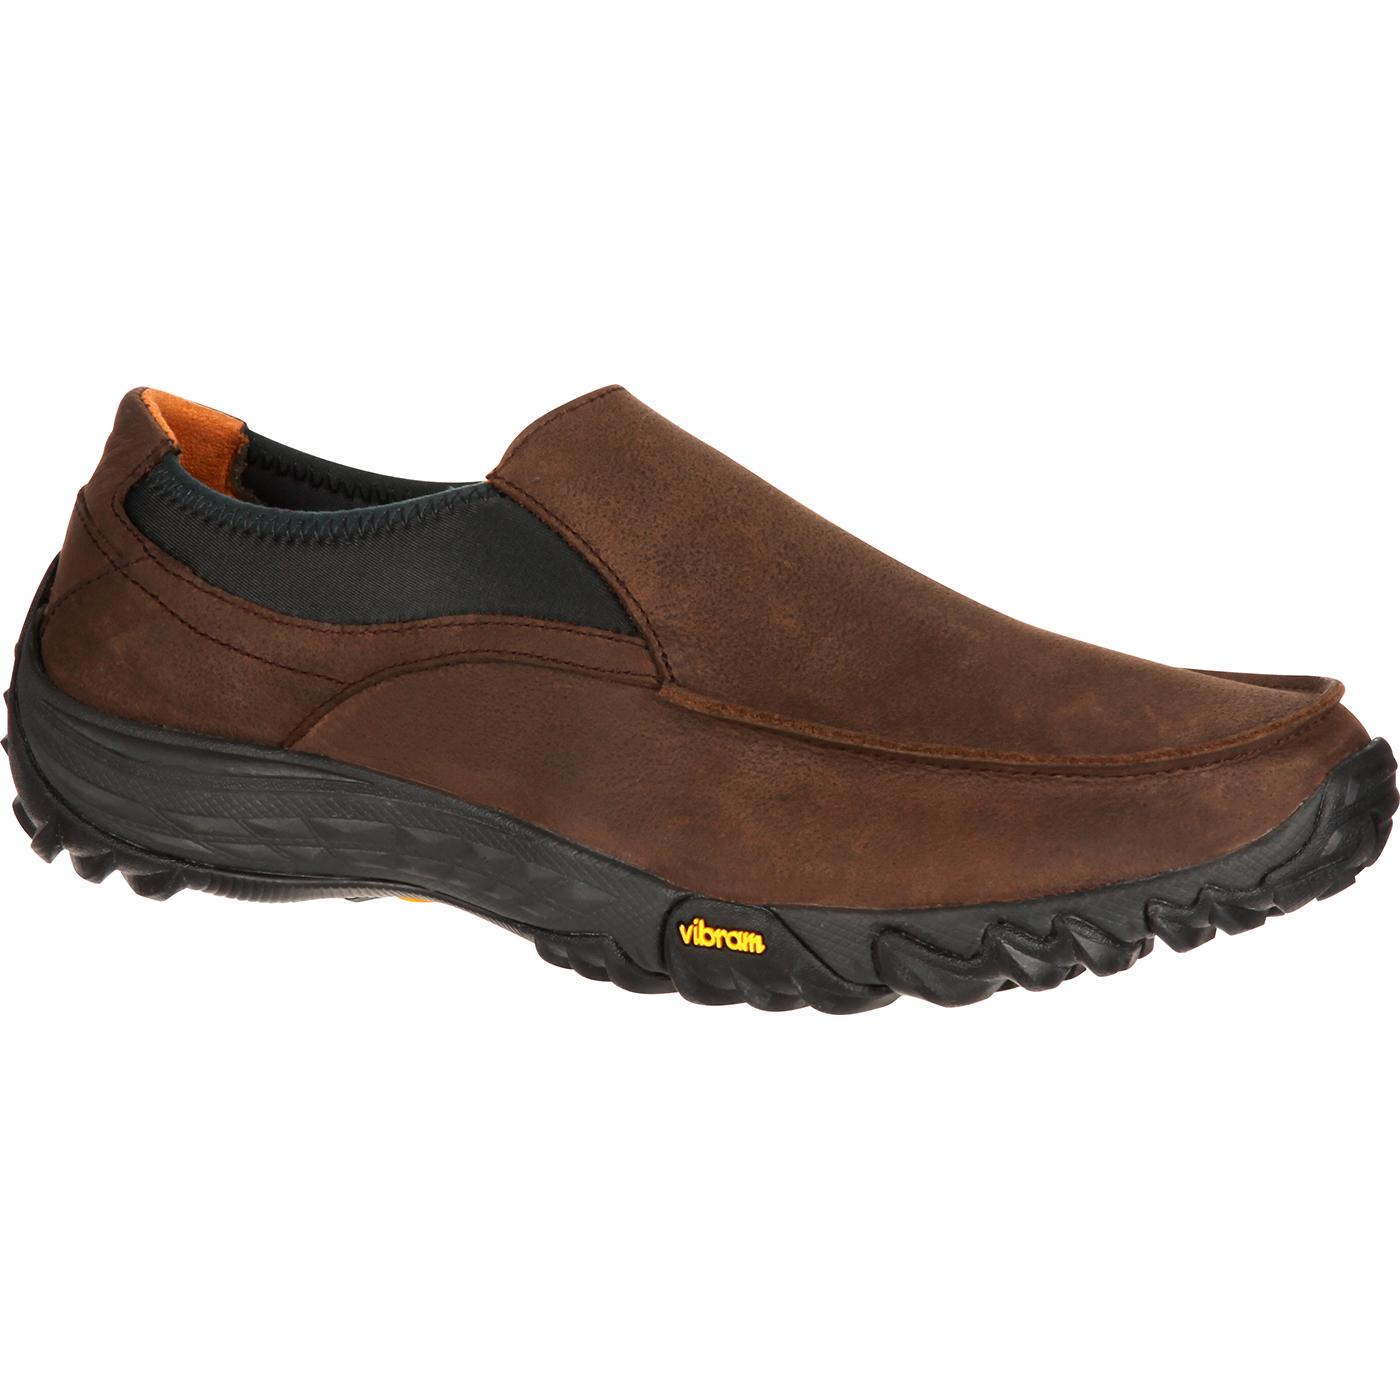 Listed above you'll find some of the best comfort shoes coupons, discounts and promotion codes as ranked by the users of bestkfilessz6.ga To use a coupon simply click the coupon code then enter the code during the store's checkout process.